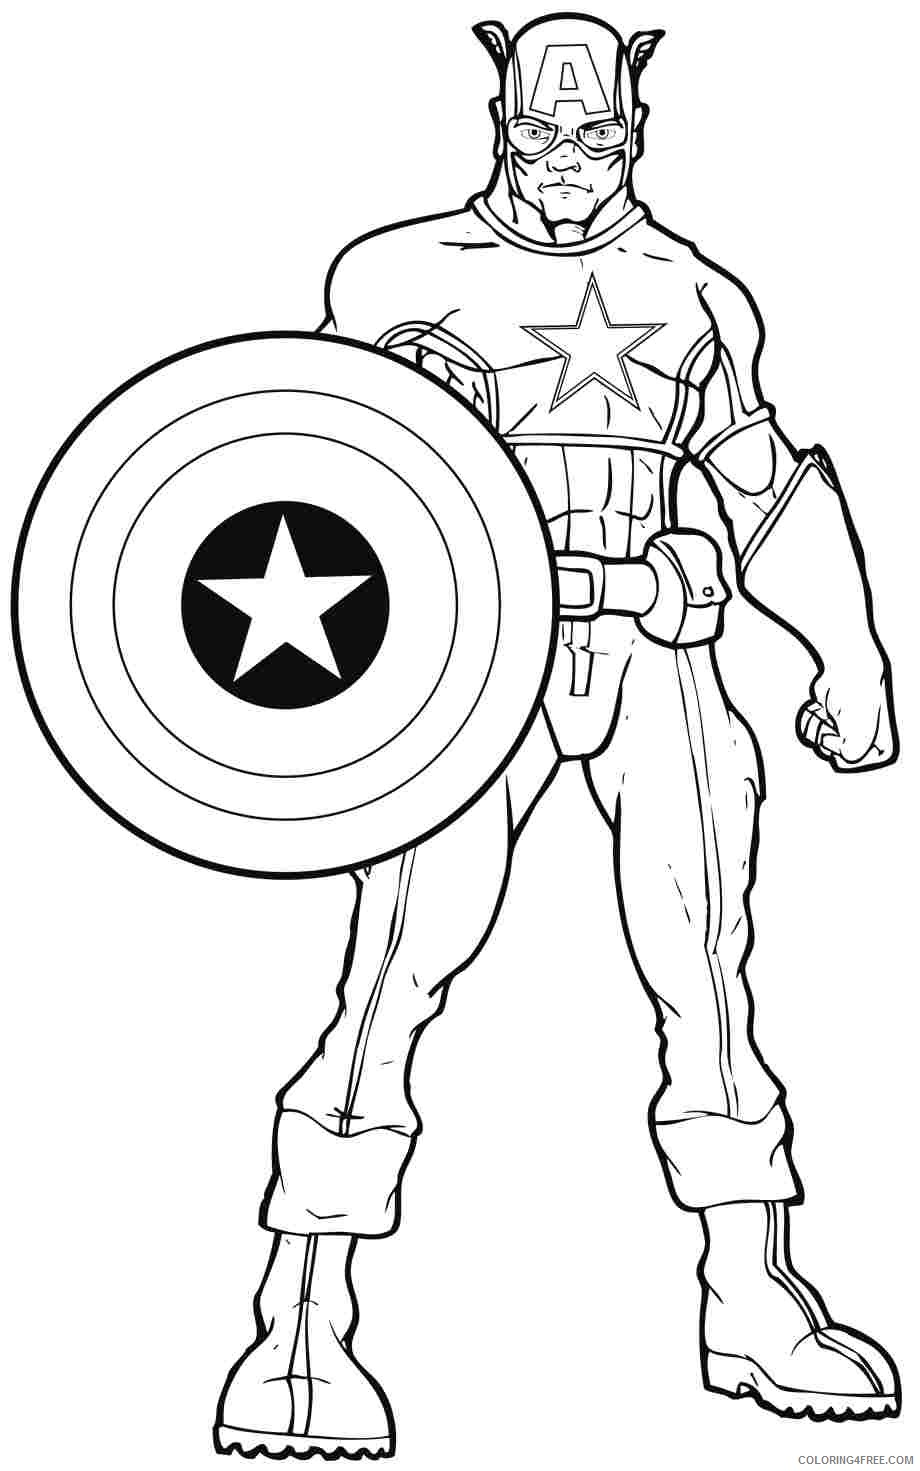 marvel superhero coloring pages Coloring4free